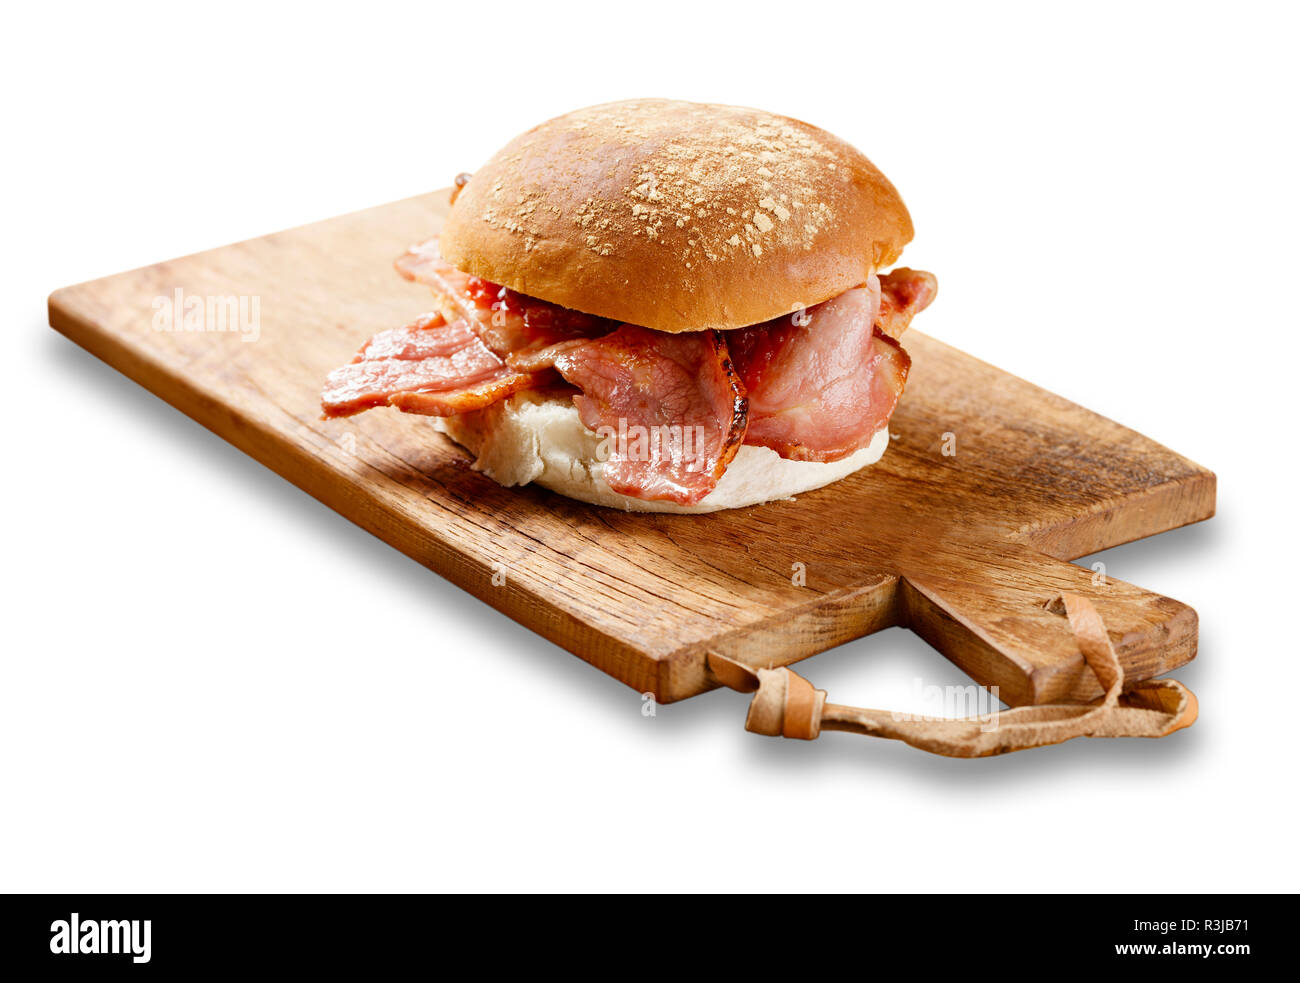 Isolated image of a bacon roll on a wooden board, with tomato sause. - Stock Image